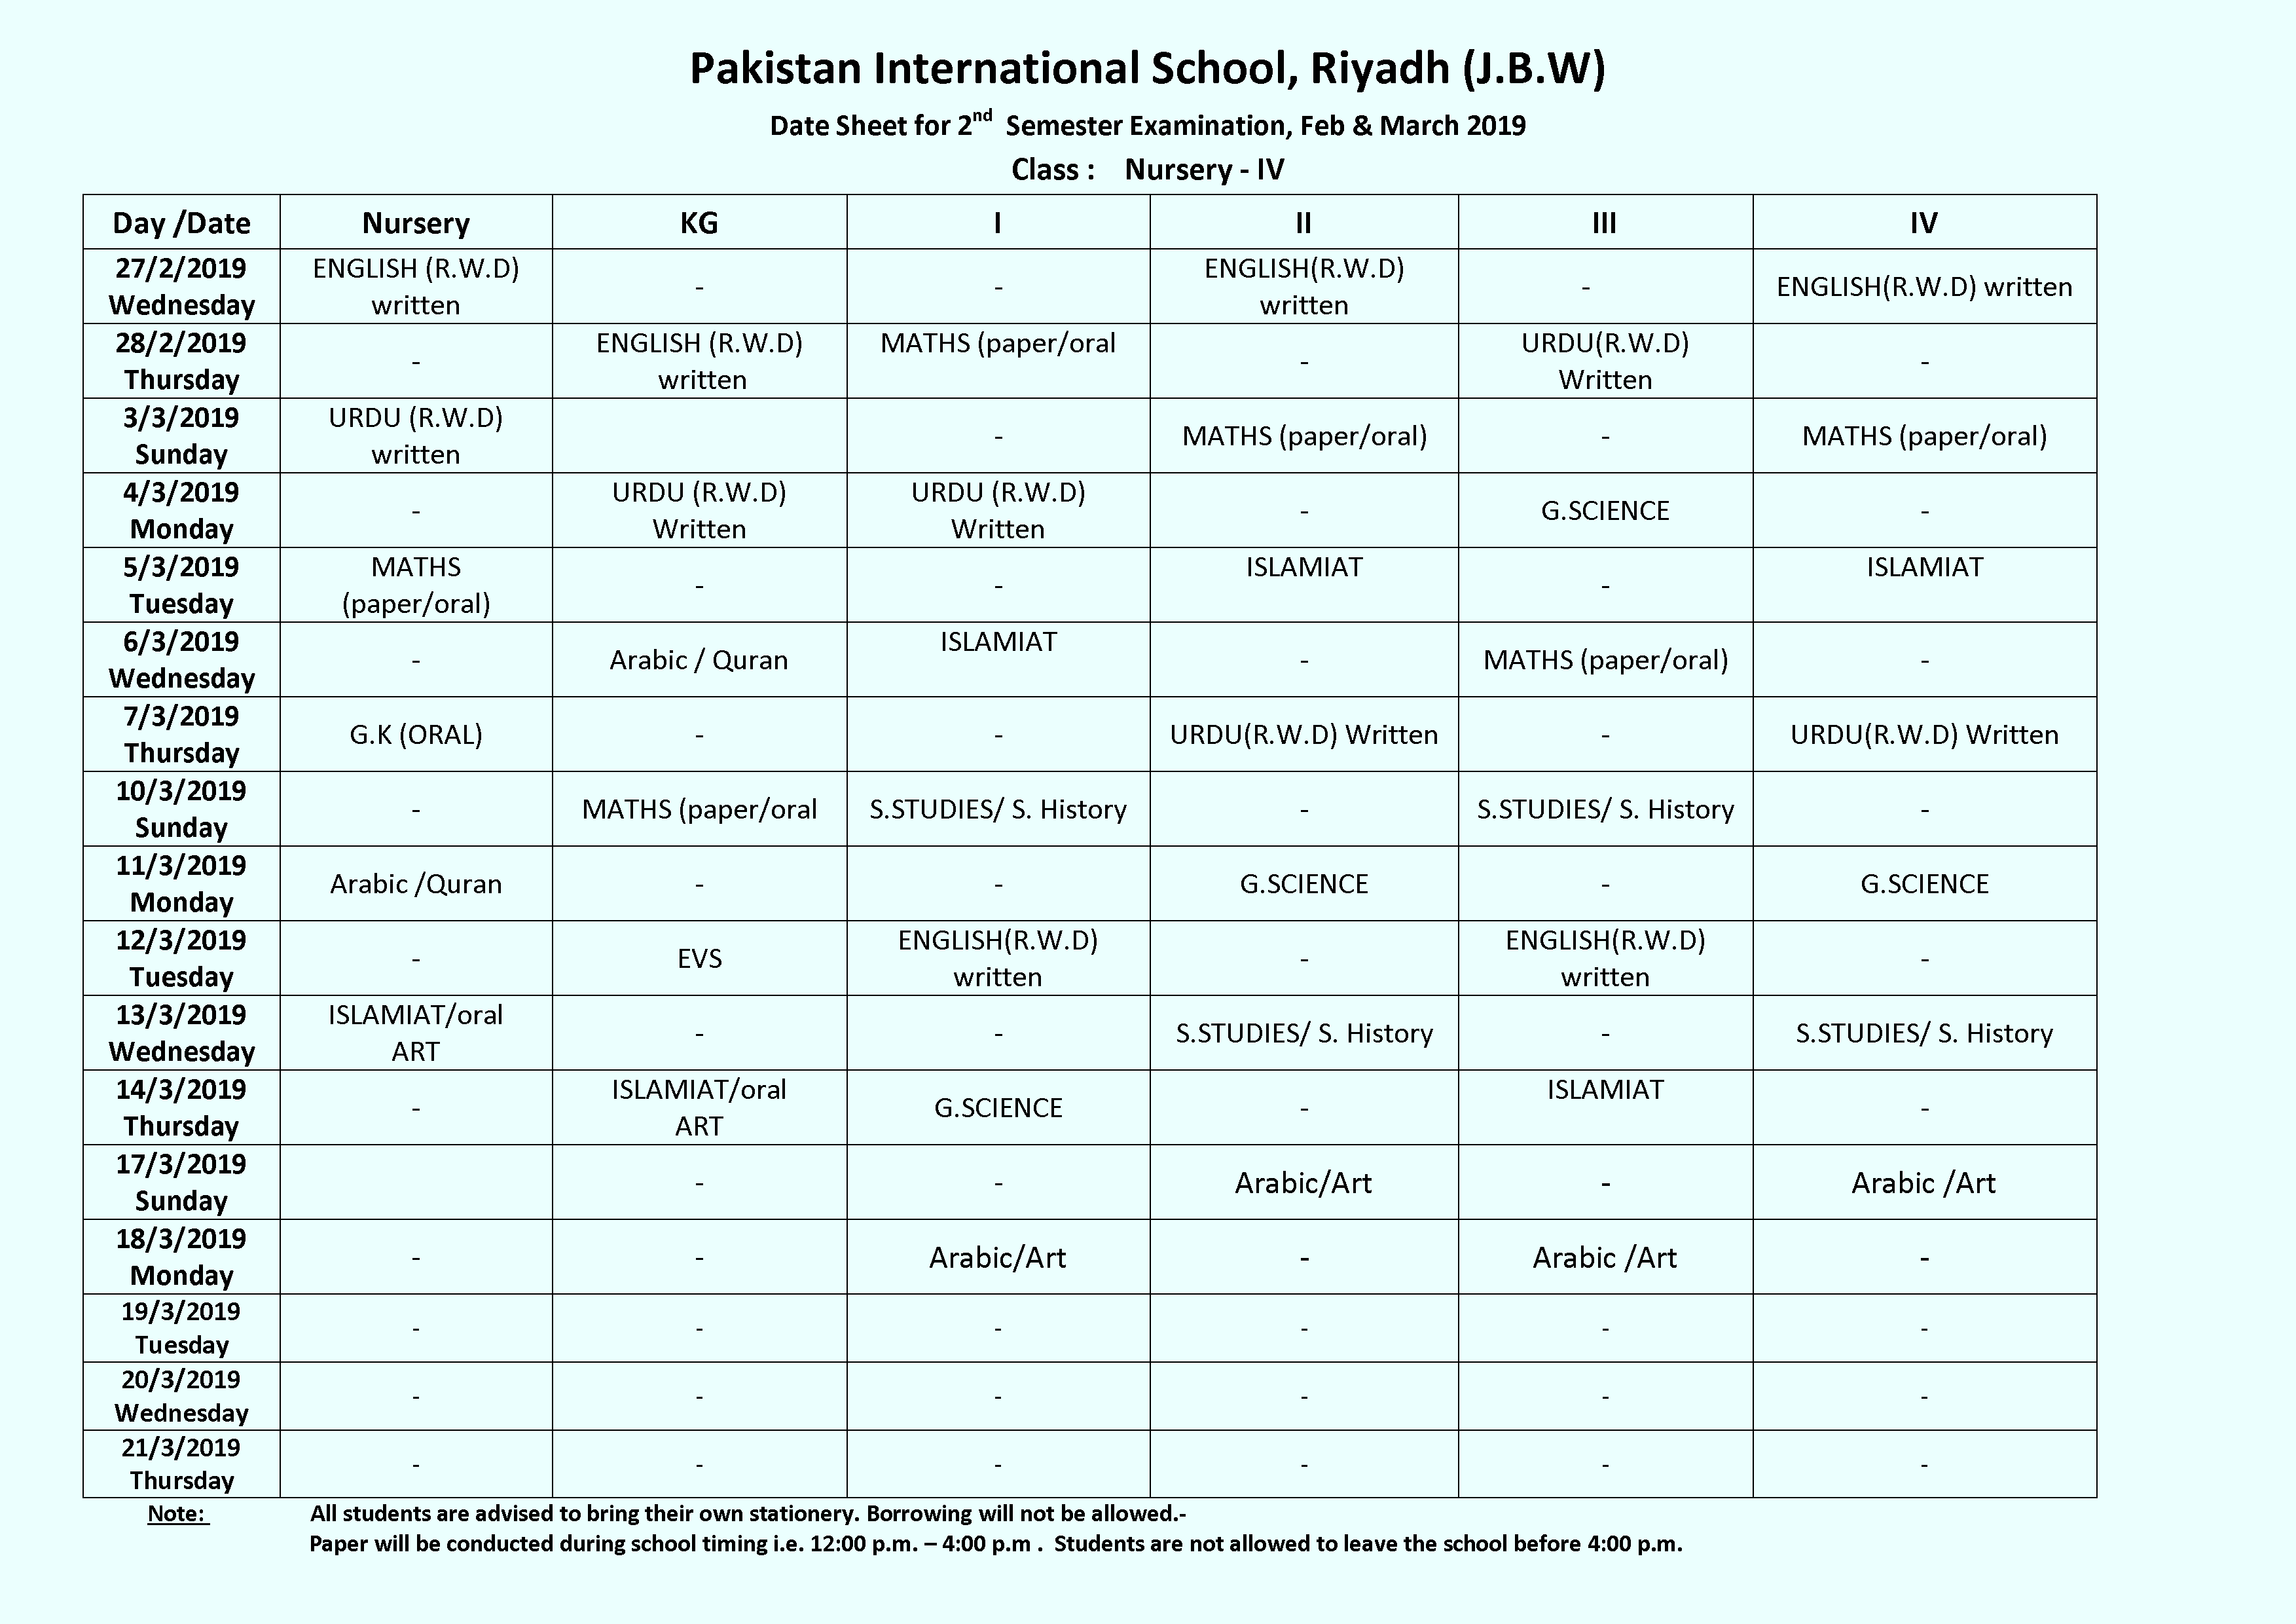 Date Sheet For 2nd Semester Examination 19